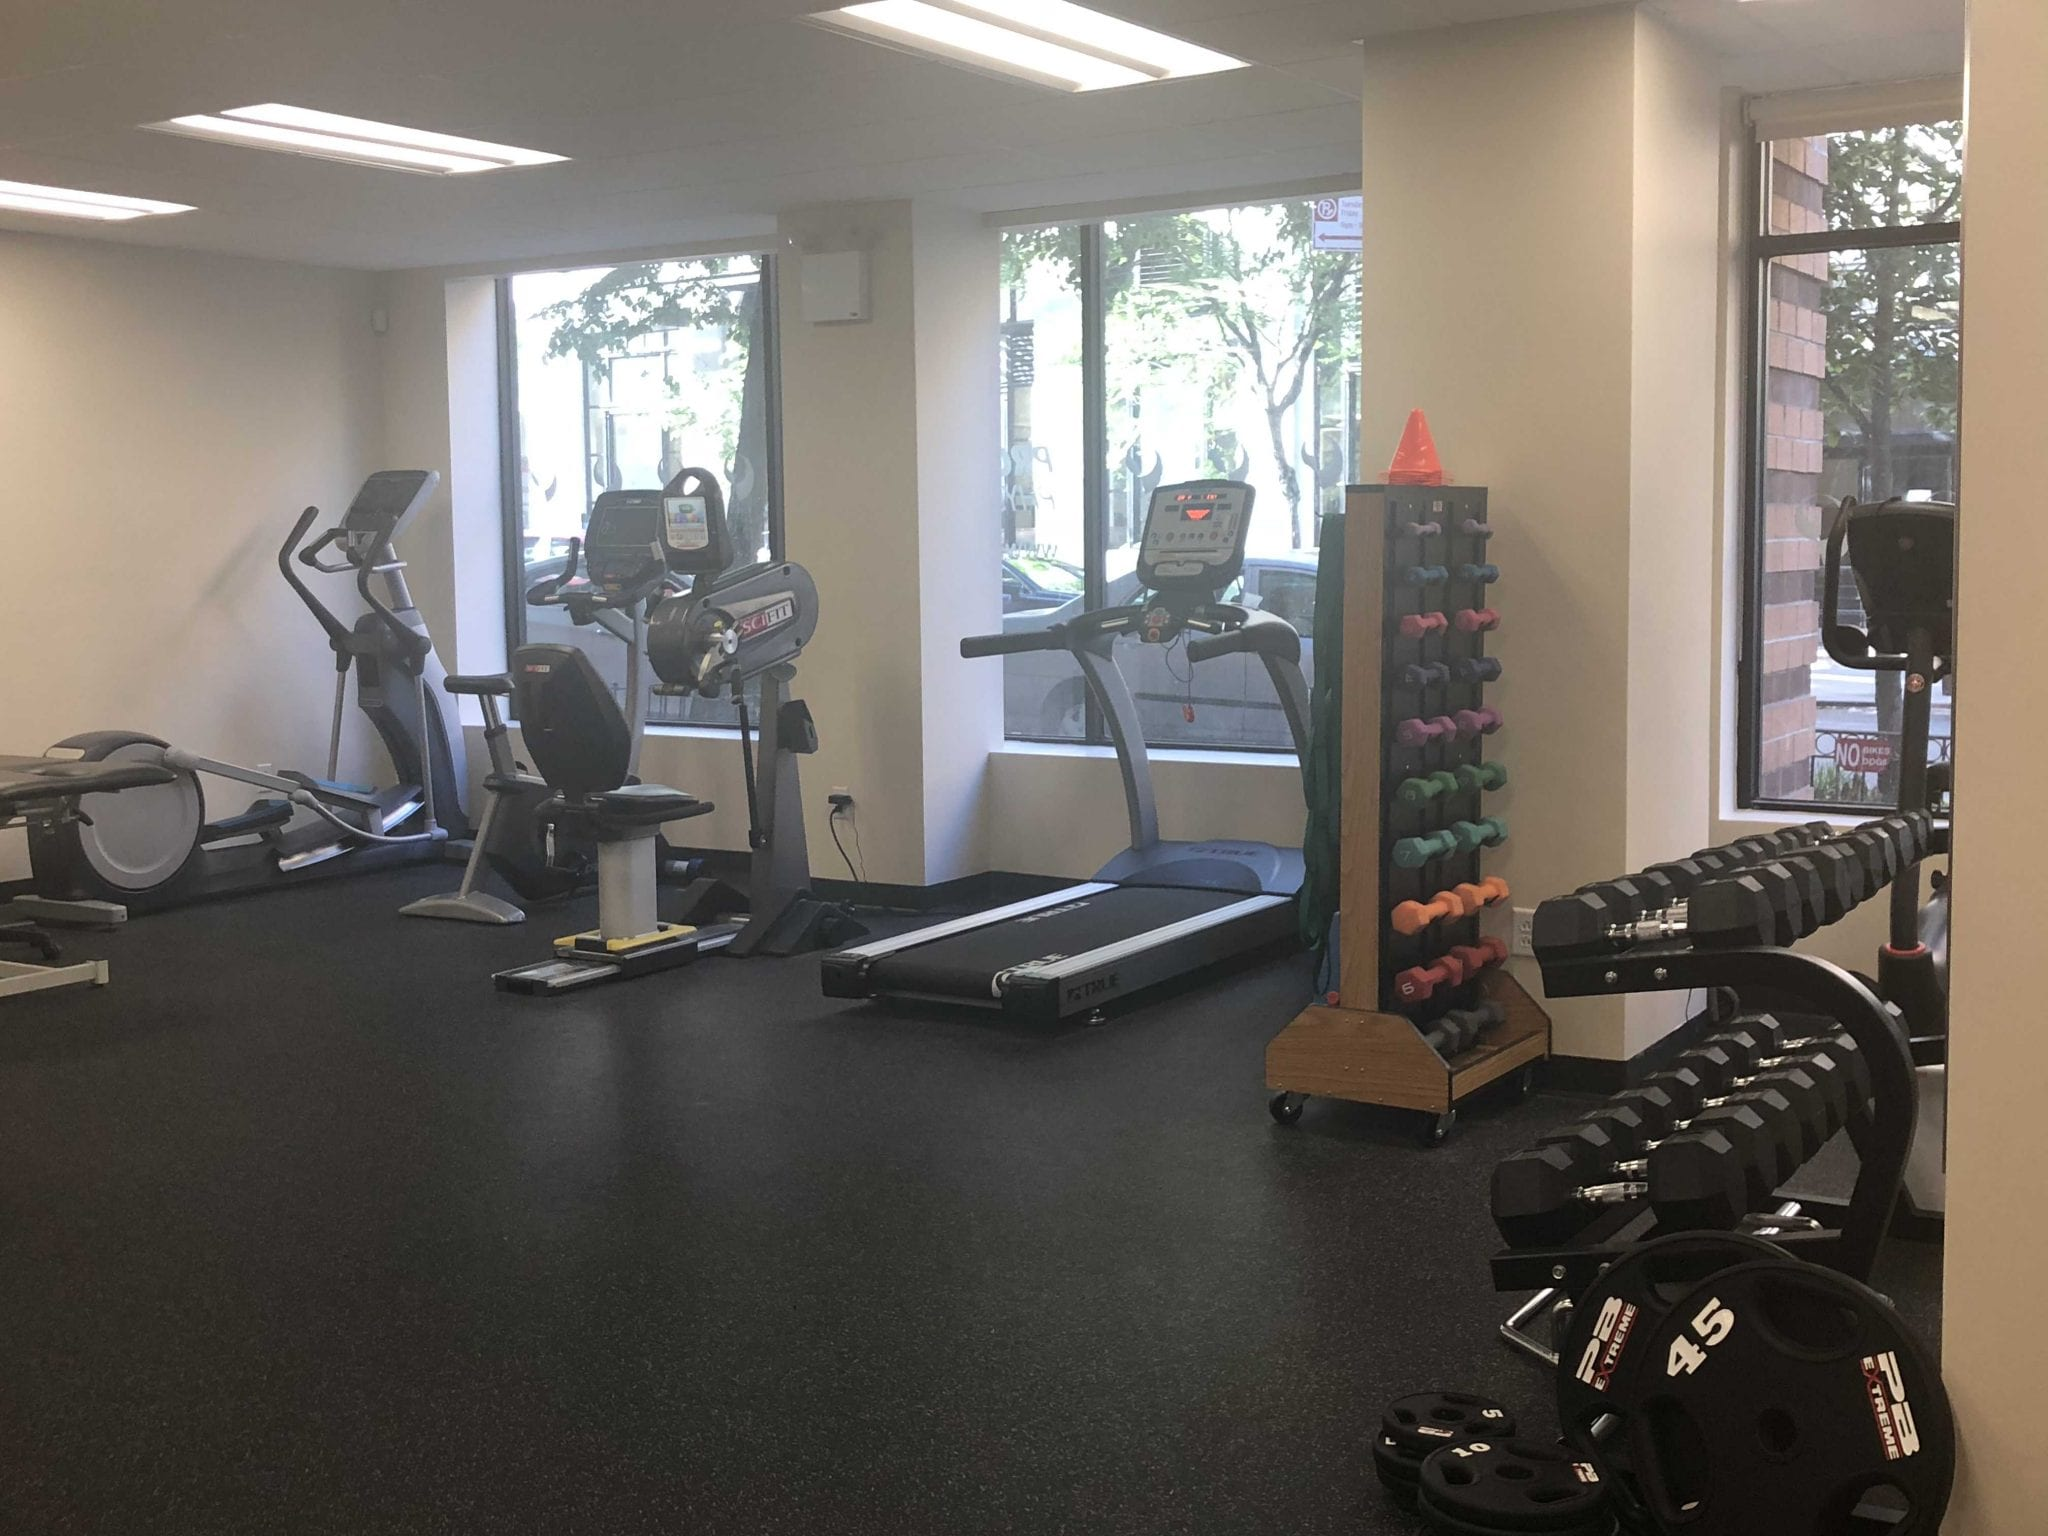 An image of equipment used for physical therapy at our clinic in lower Manhattan, New York City, at East Village.